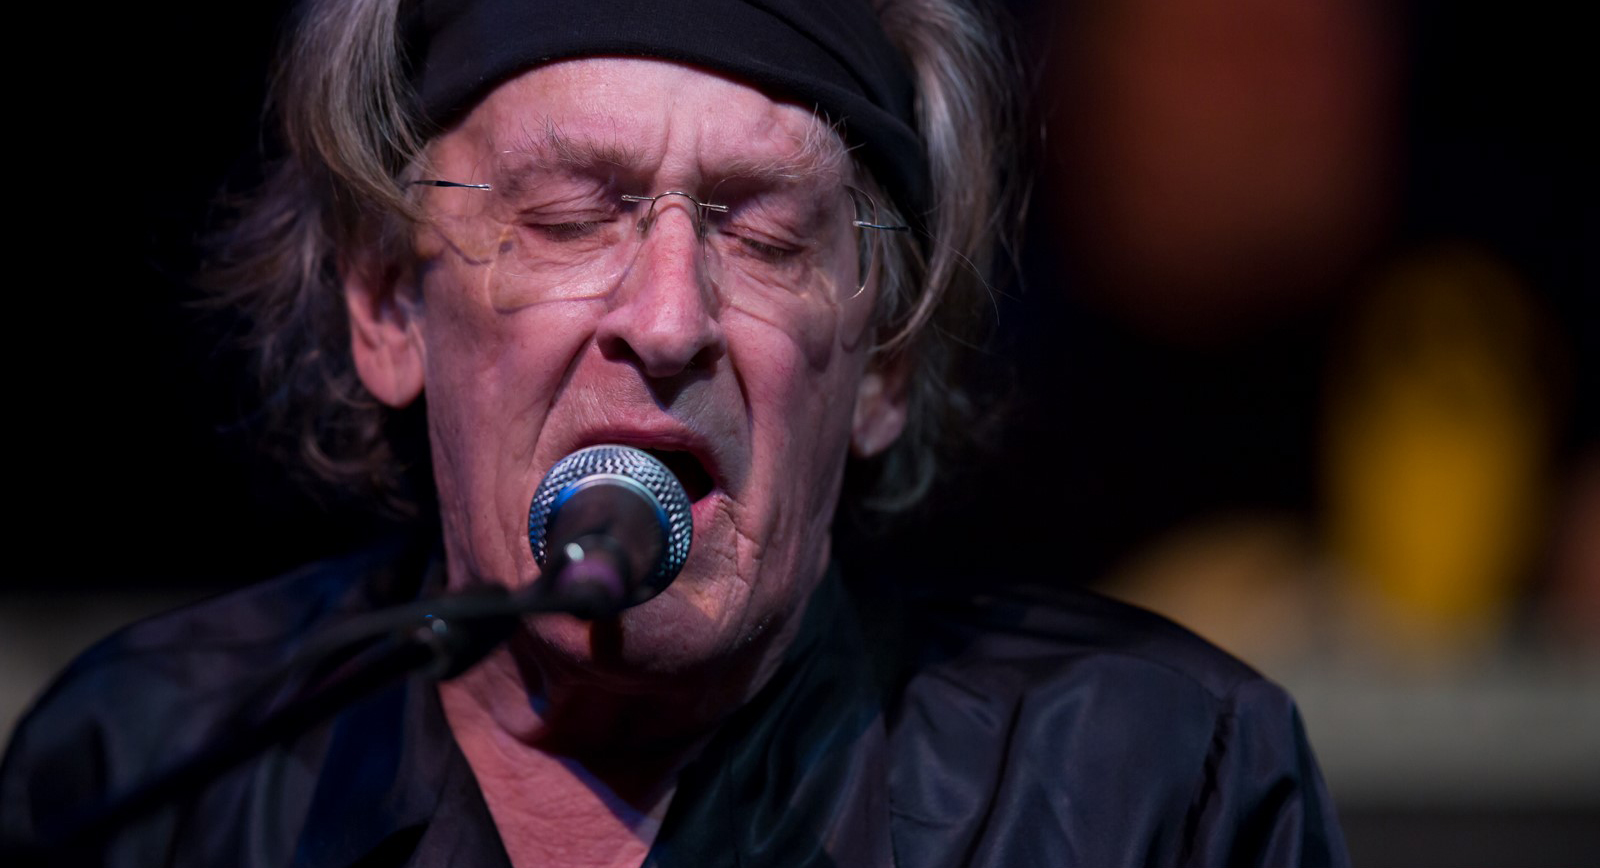 Paul-Kantner-2016-Concert-Photography-Passed-Away-Jefferson-Airplane-Starship-Image-Gallery